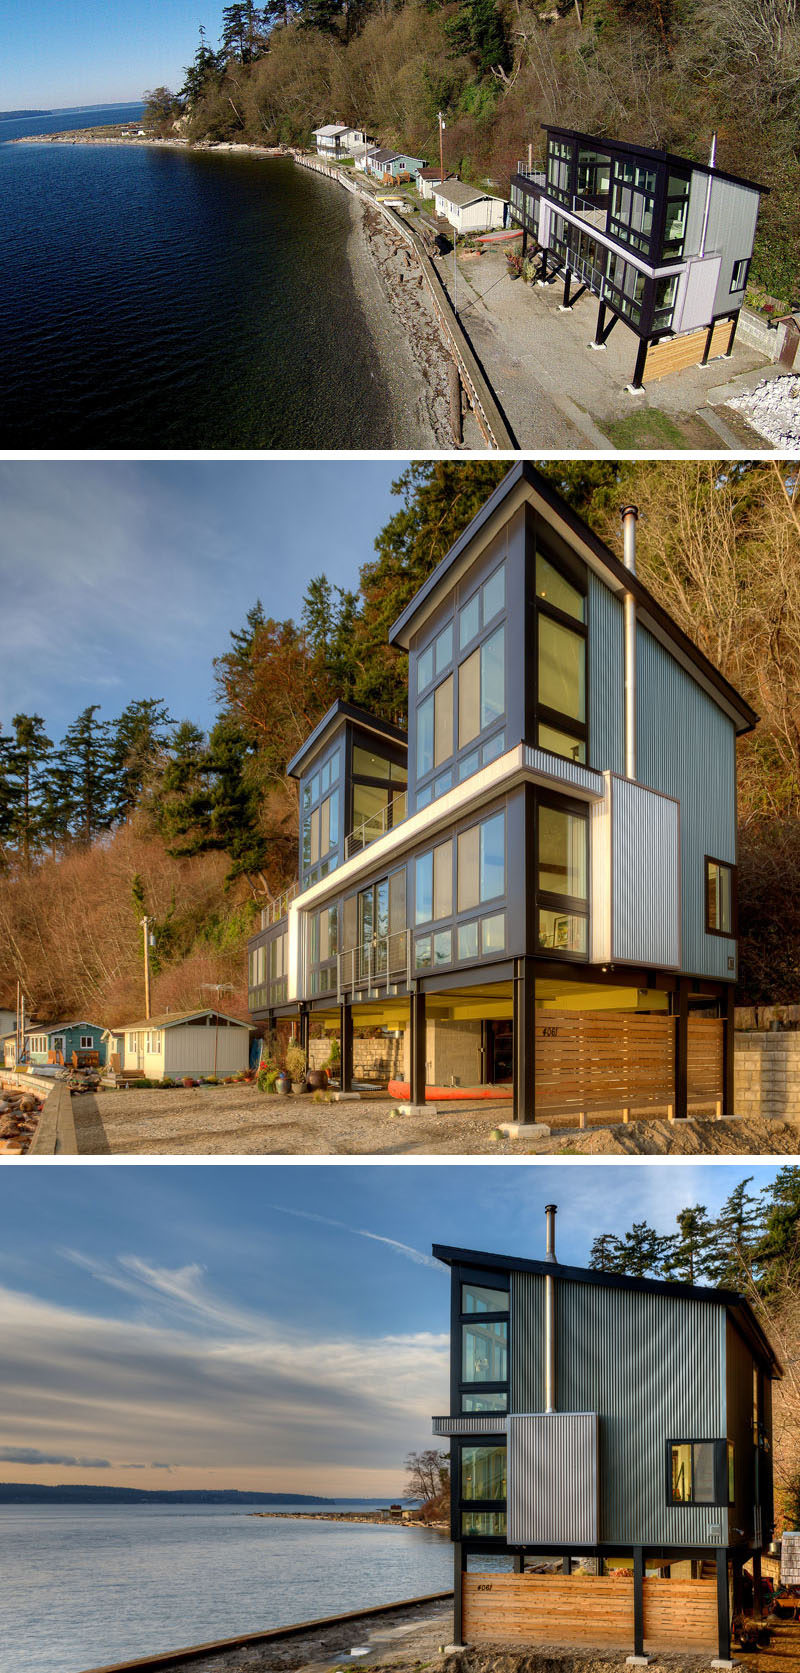 This home, designed by Designs Northwest Architects, sits at the bottom of an extremely steep slope, that experiences periodic shallow surface mud slides. As mud slides are a definite possibility, and due to the location of the home being on a remote beach without road access, making it too difficult to bring in heavy equipment and concrete trucks, the architects decided to design the home above the ground on low profile steel columns, instead of a 10 foot tall retainer wall.